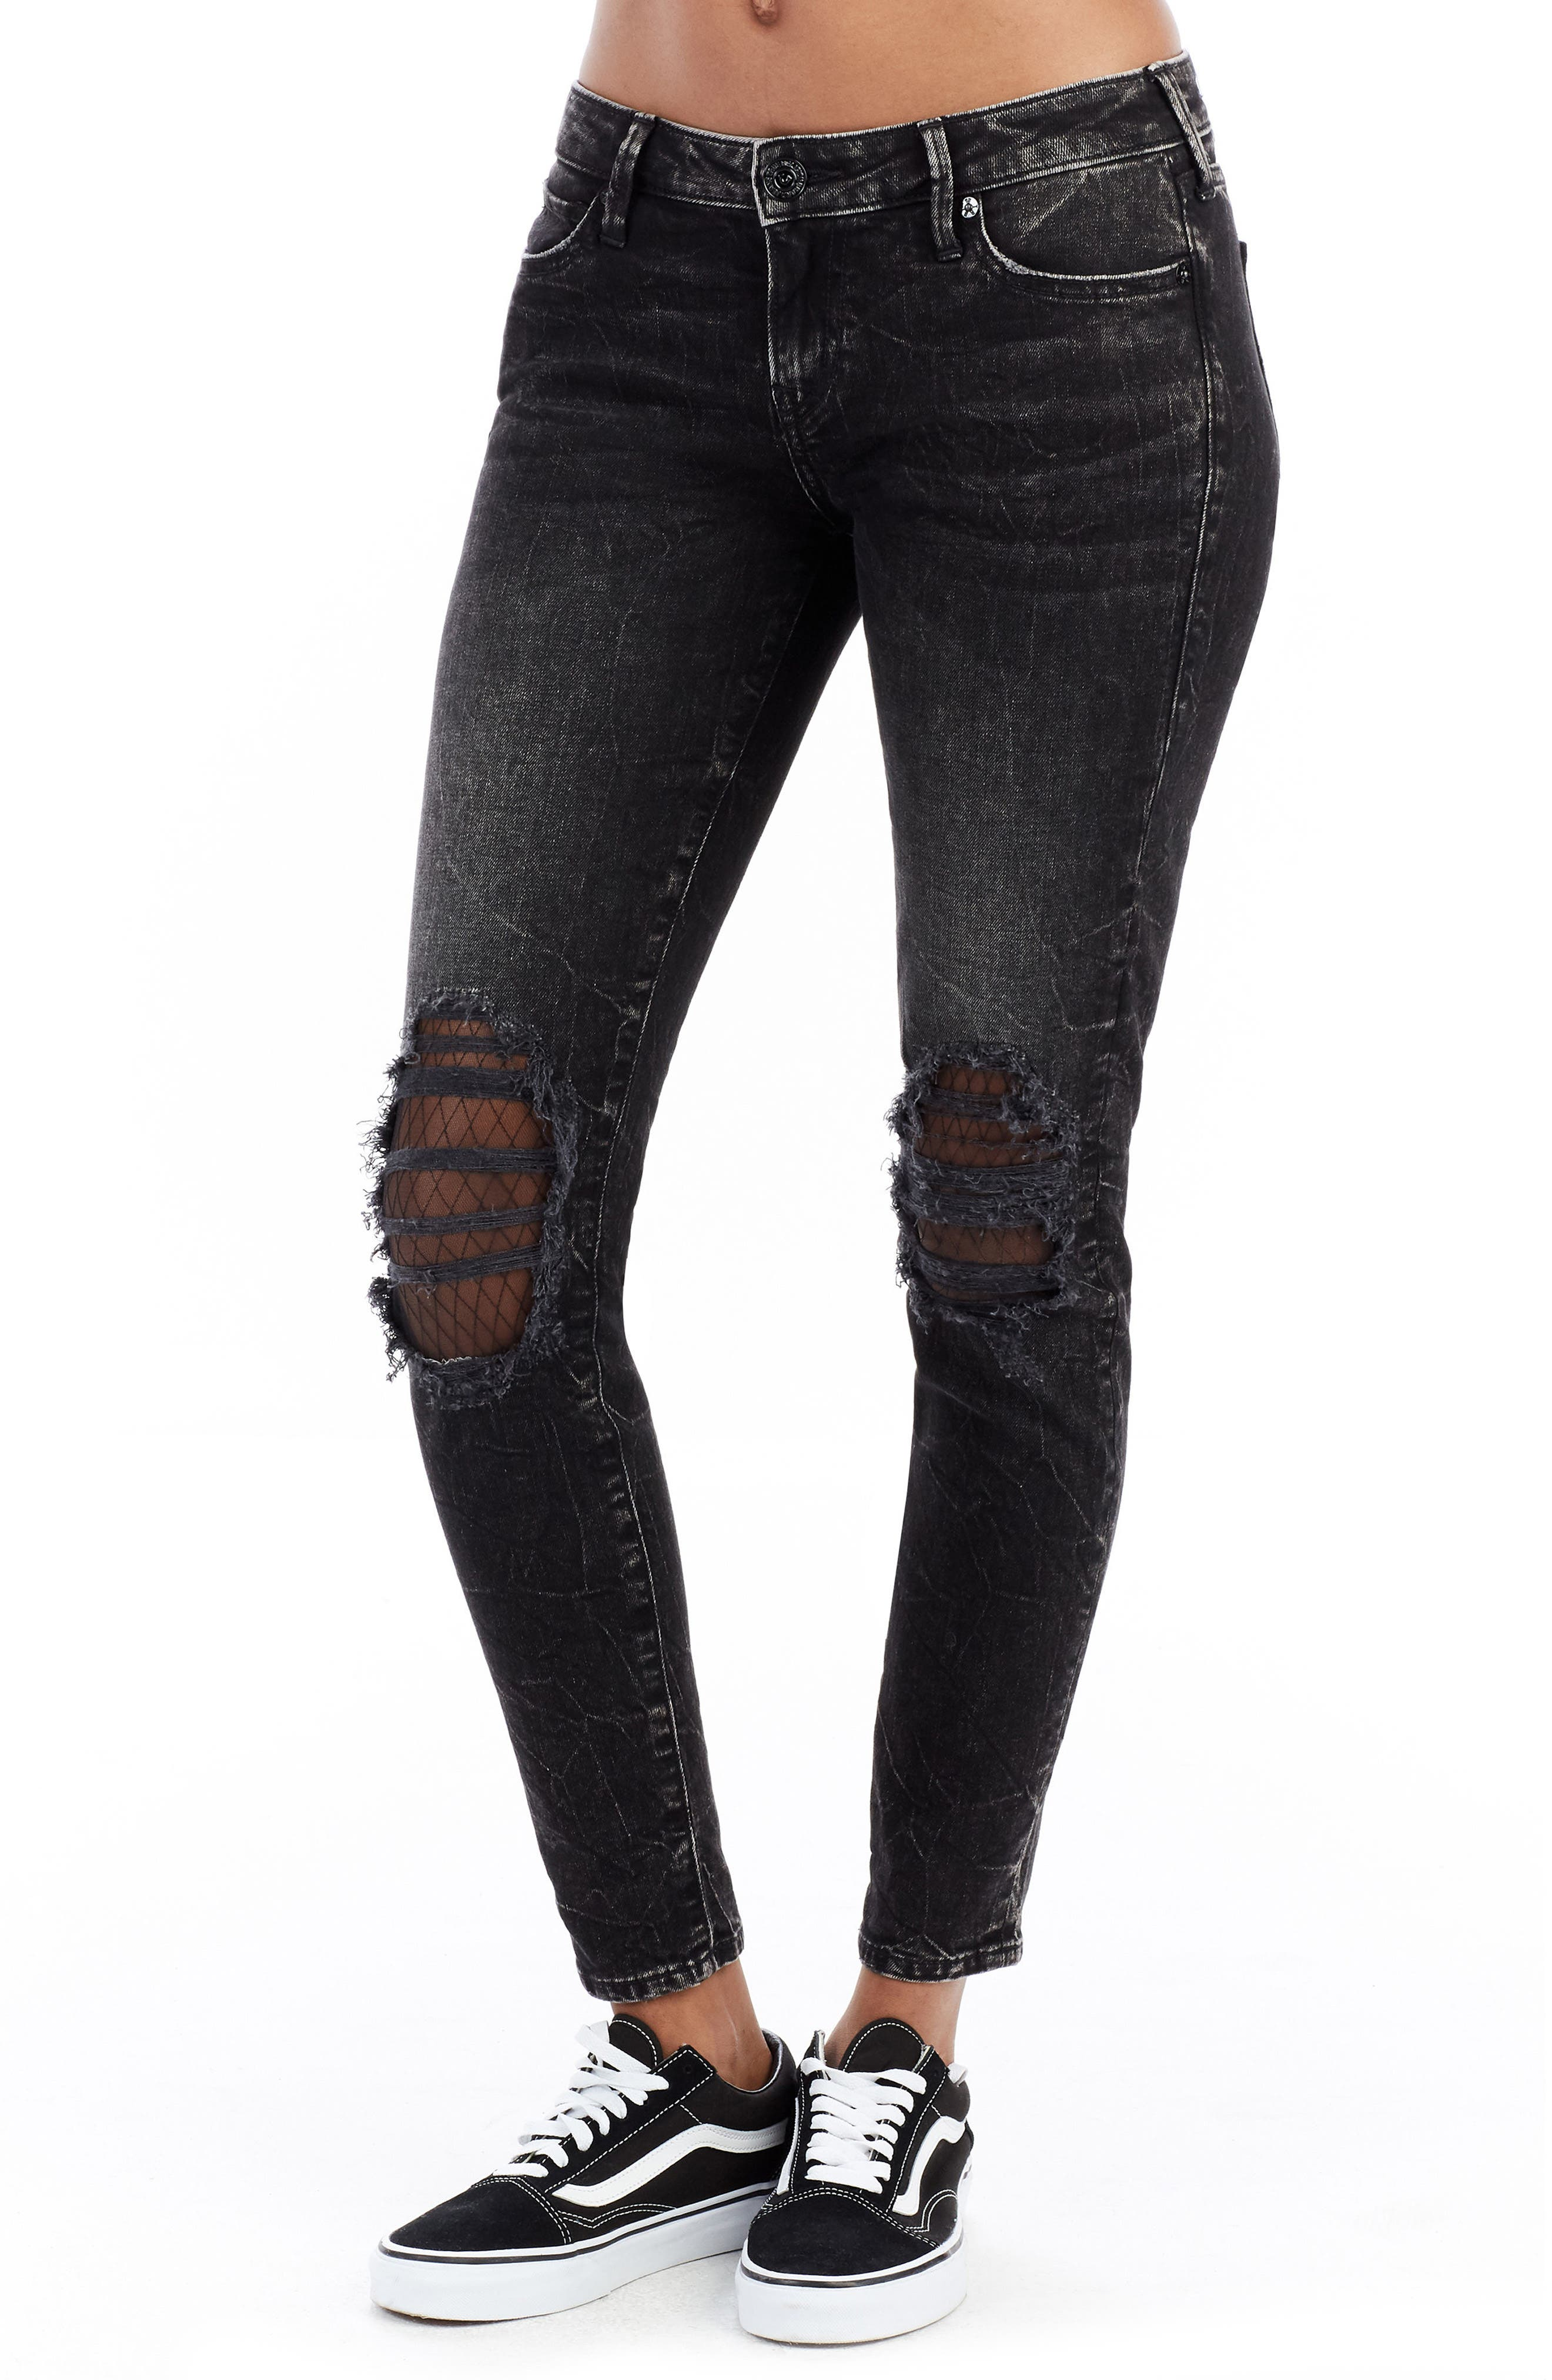 Halle Ankle Skinny Jeans,                             Main thumbnail 1, color,                             001